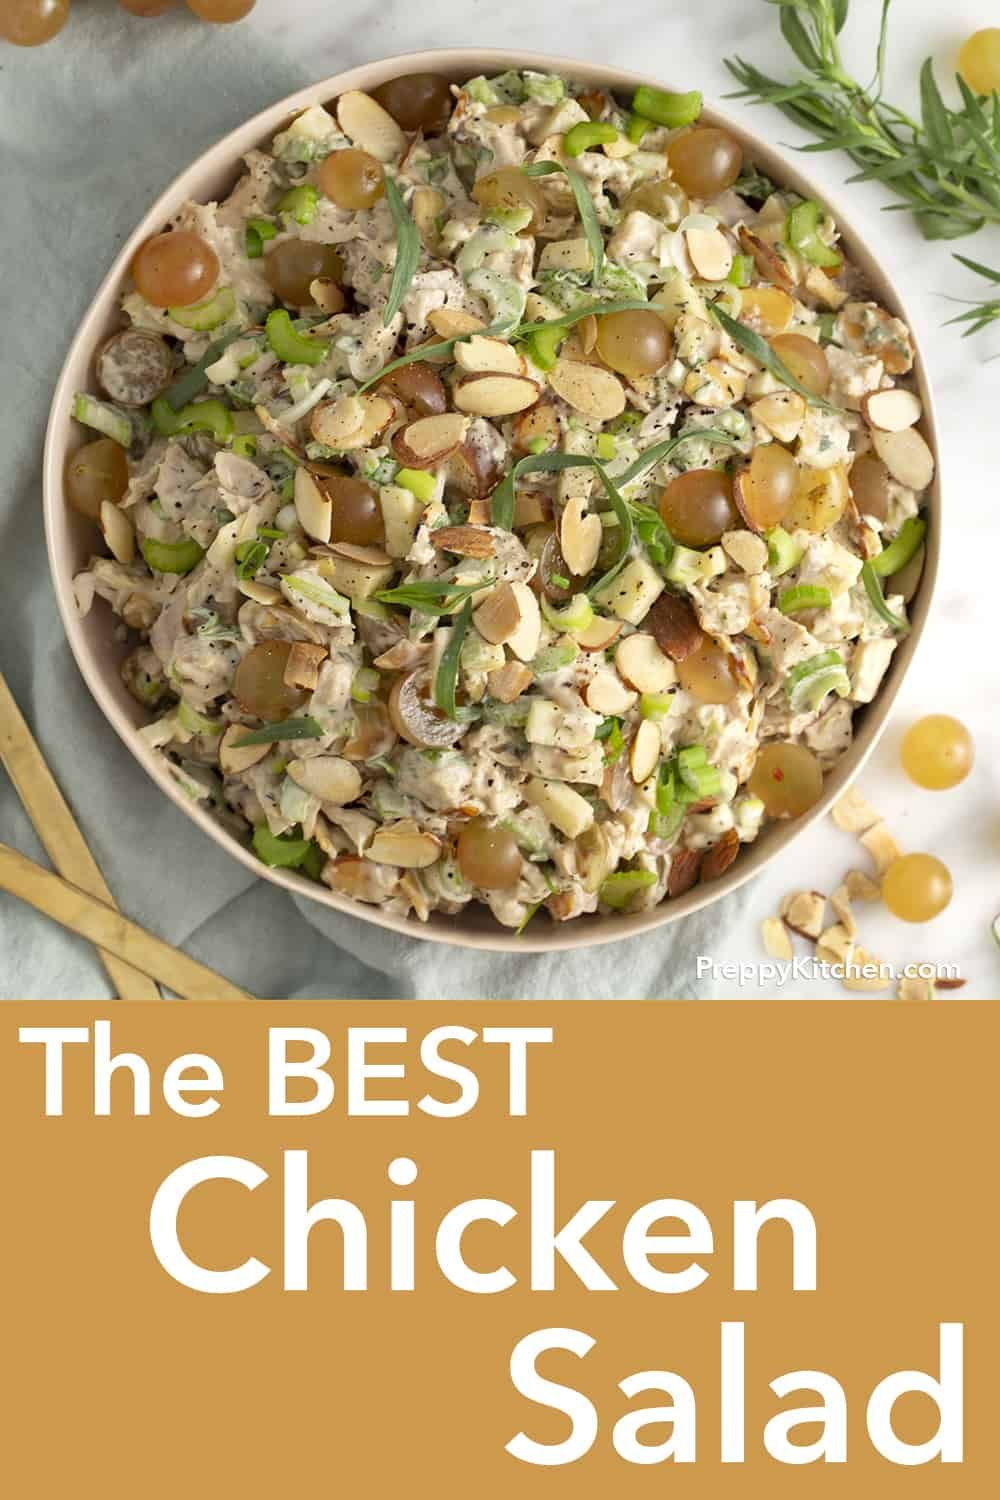 This Amazing Chicken Salad Recipe With Celery And Toasted